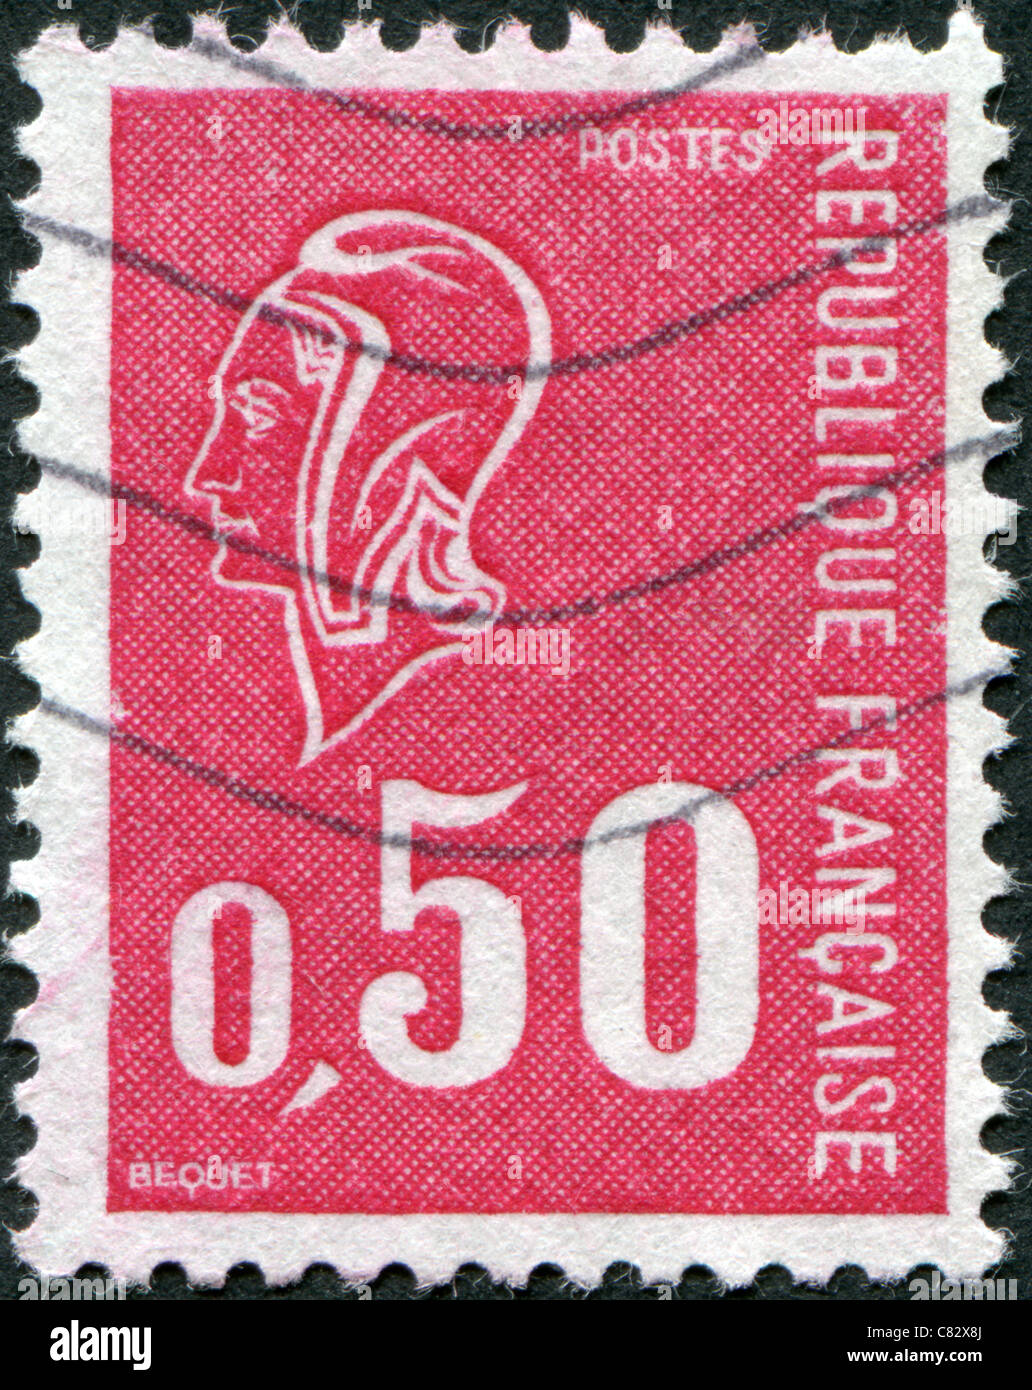 FRANCE - 1971: A stamp printed in France, depicts Marianne (by Bequet) is a national emblem of France - Stock Image